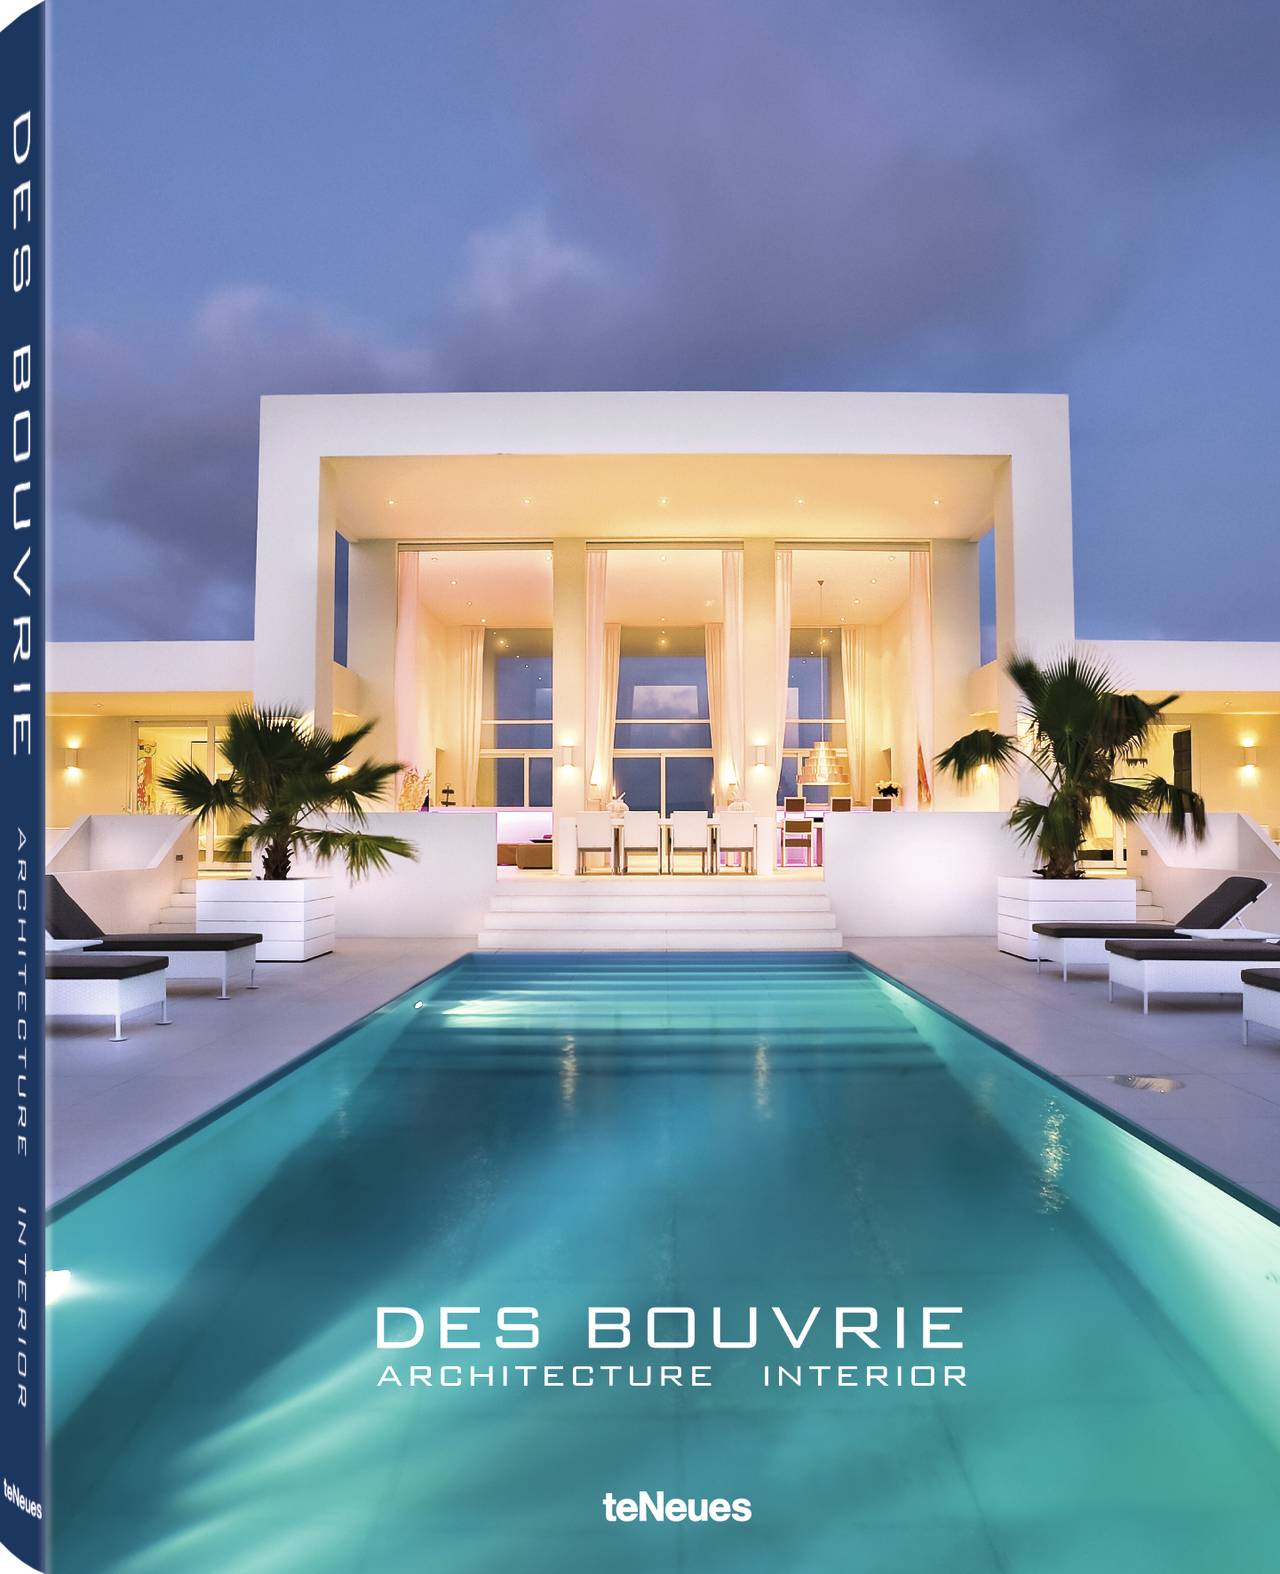 © des Bouvrie Architecture Interior, published by teNeues, € 49,90 www.teneues.com. Curacao, Photo © 2015 Jan & Monique des Bouvrie. All rights reserved.